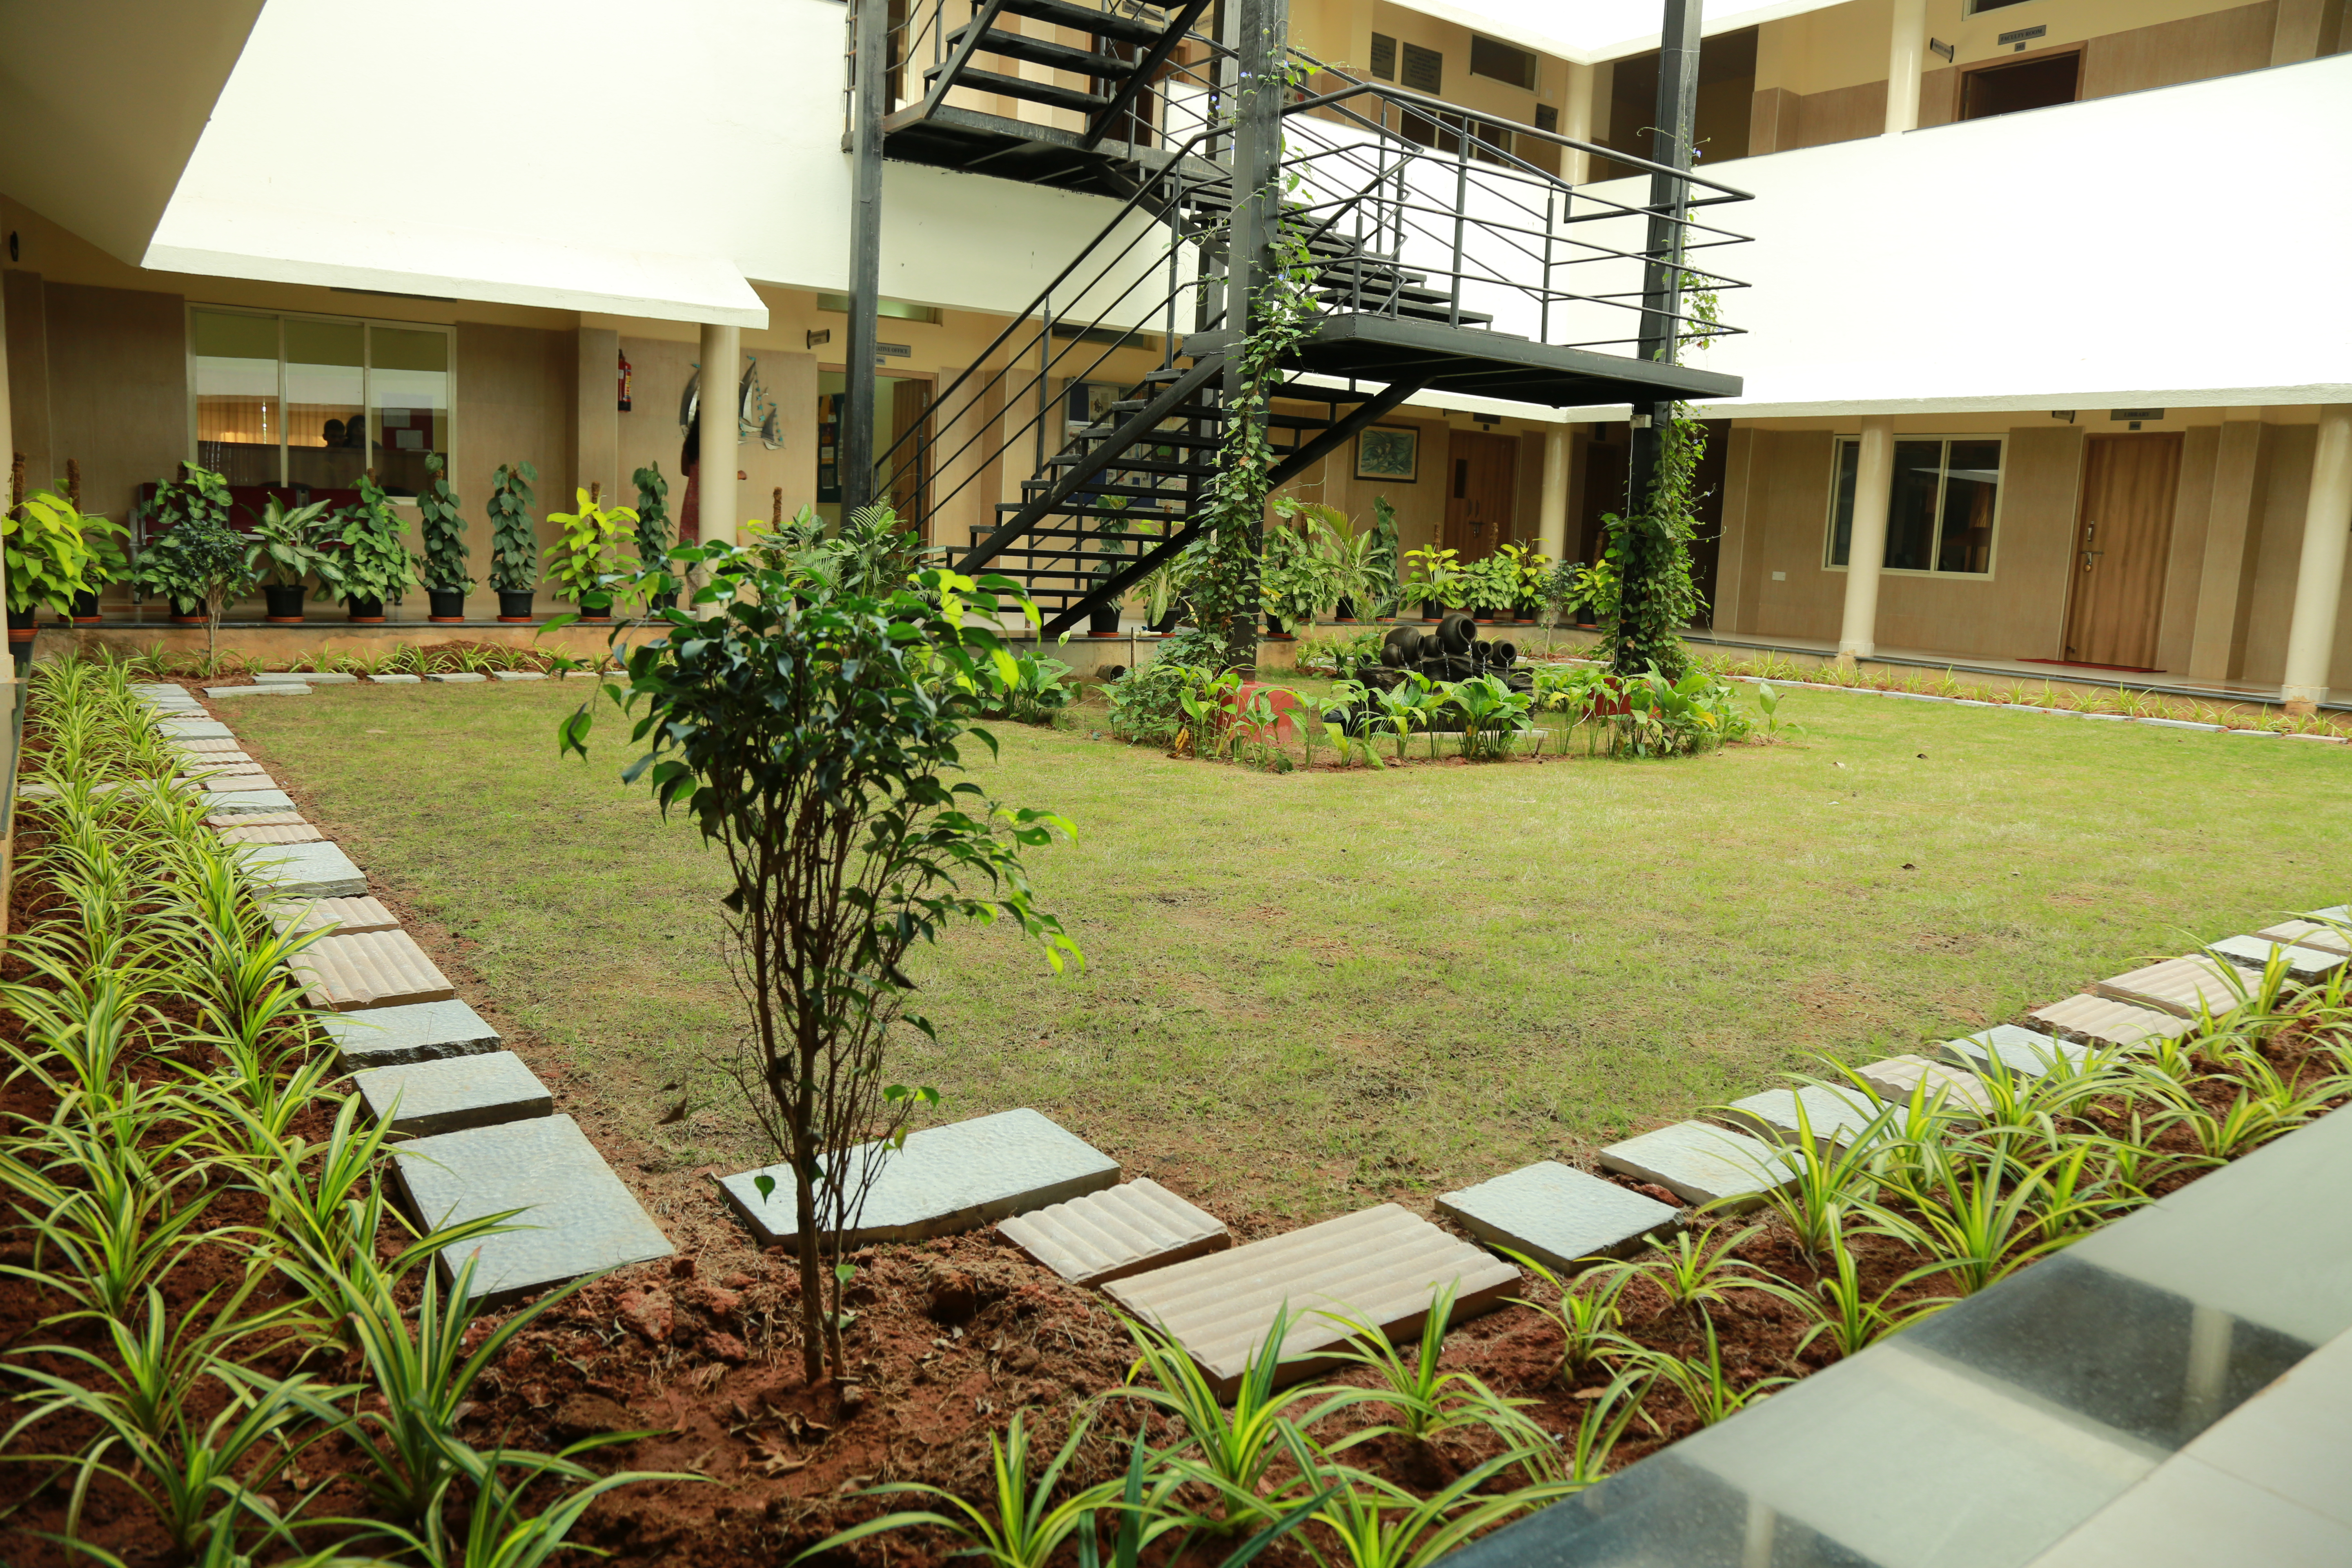 Nitte School Of Fashion Technology And Interior Design Bangalore Courses Fees Placements Ranking Admission 2020